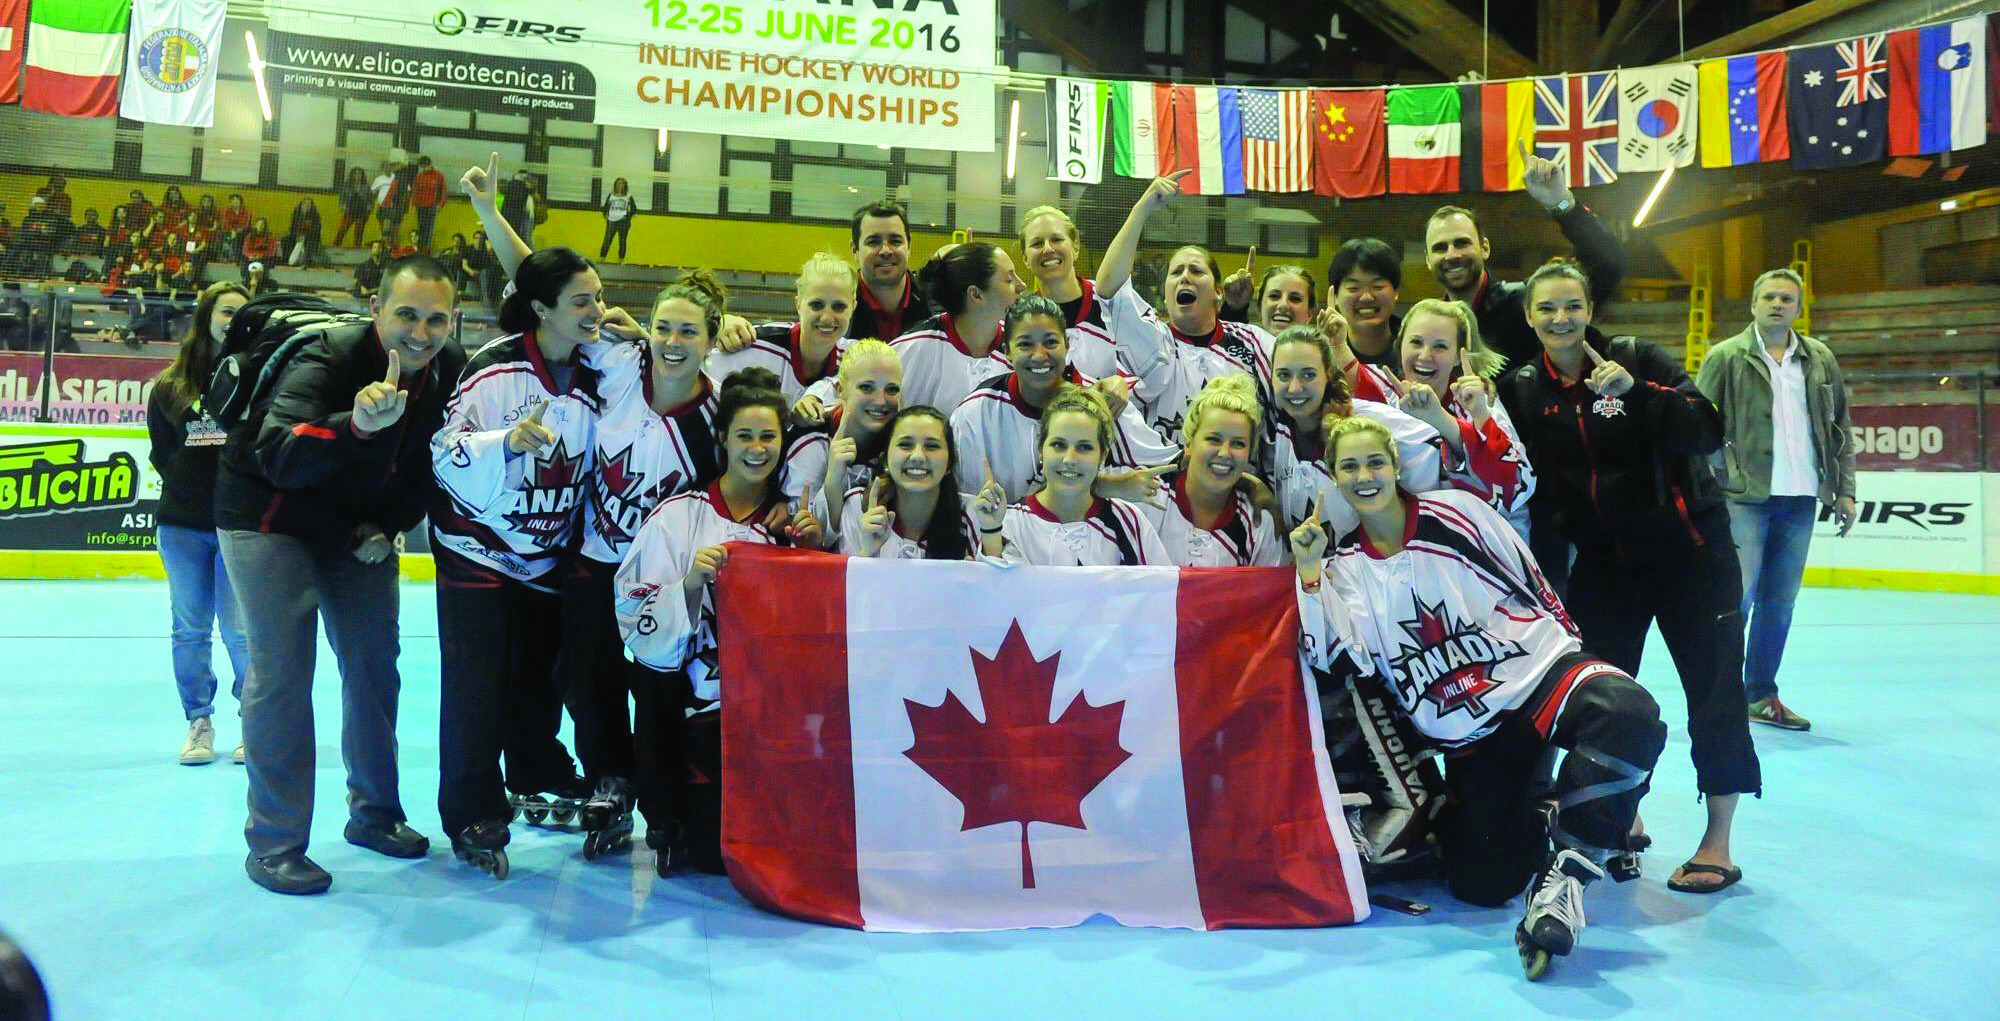 INLINE AND ICE: YORK'S SOMERVILLE AND POWER EXCEL ON